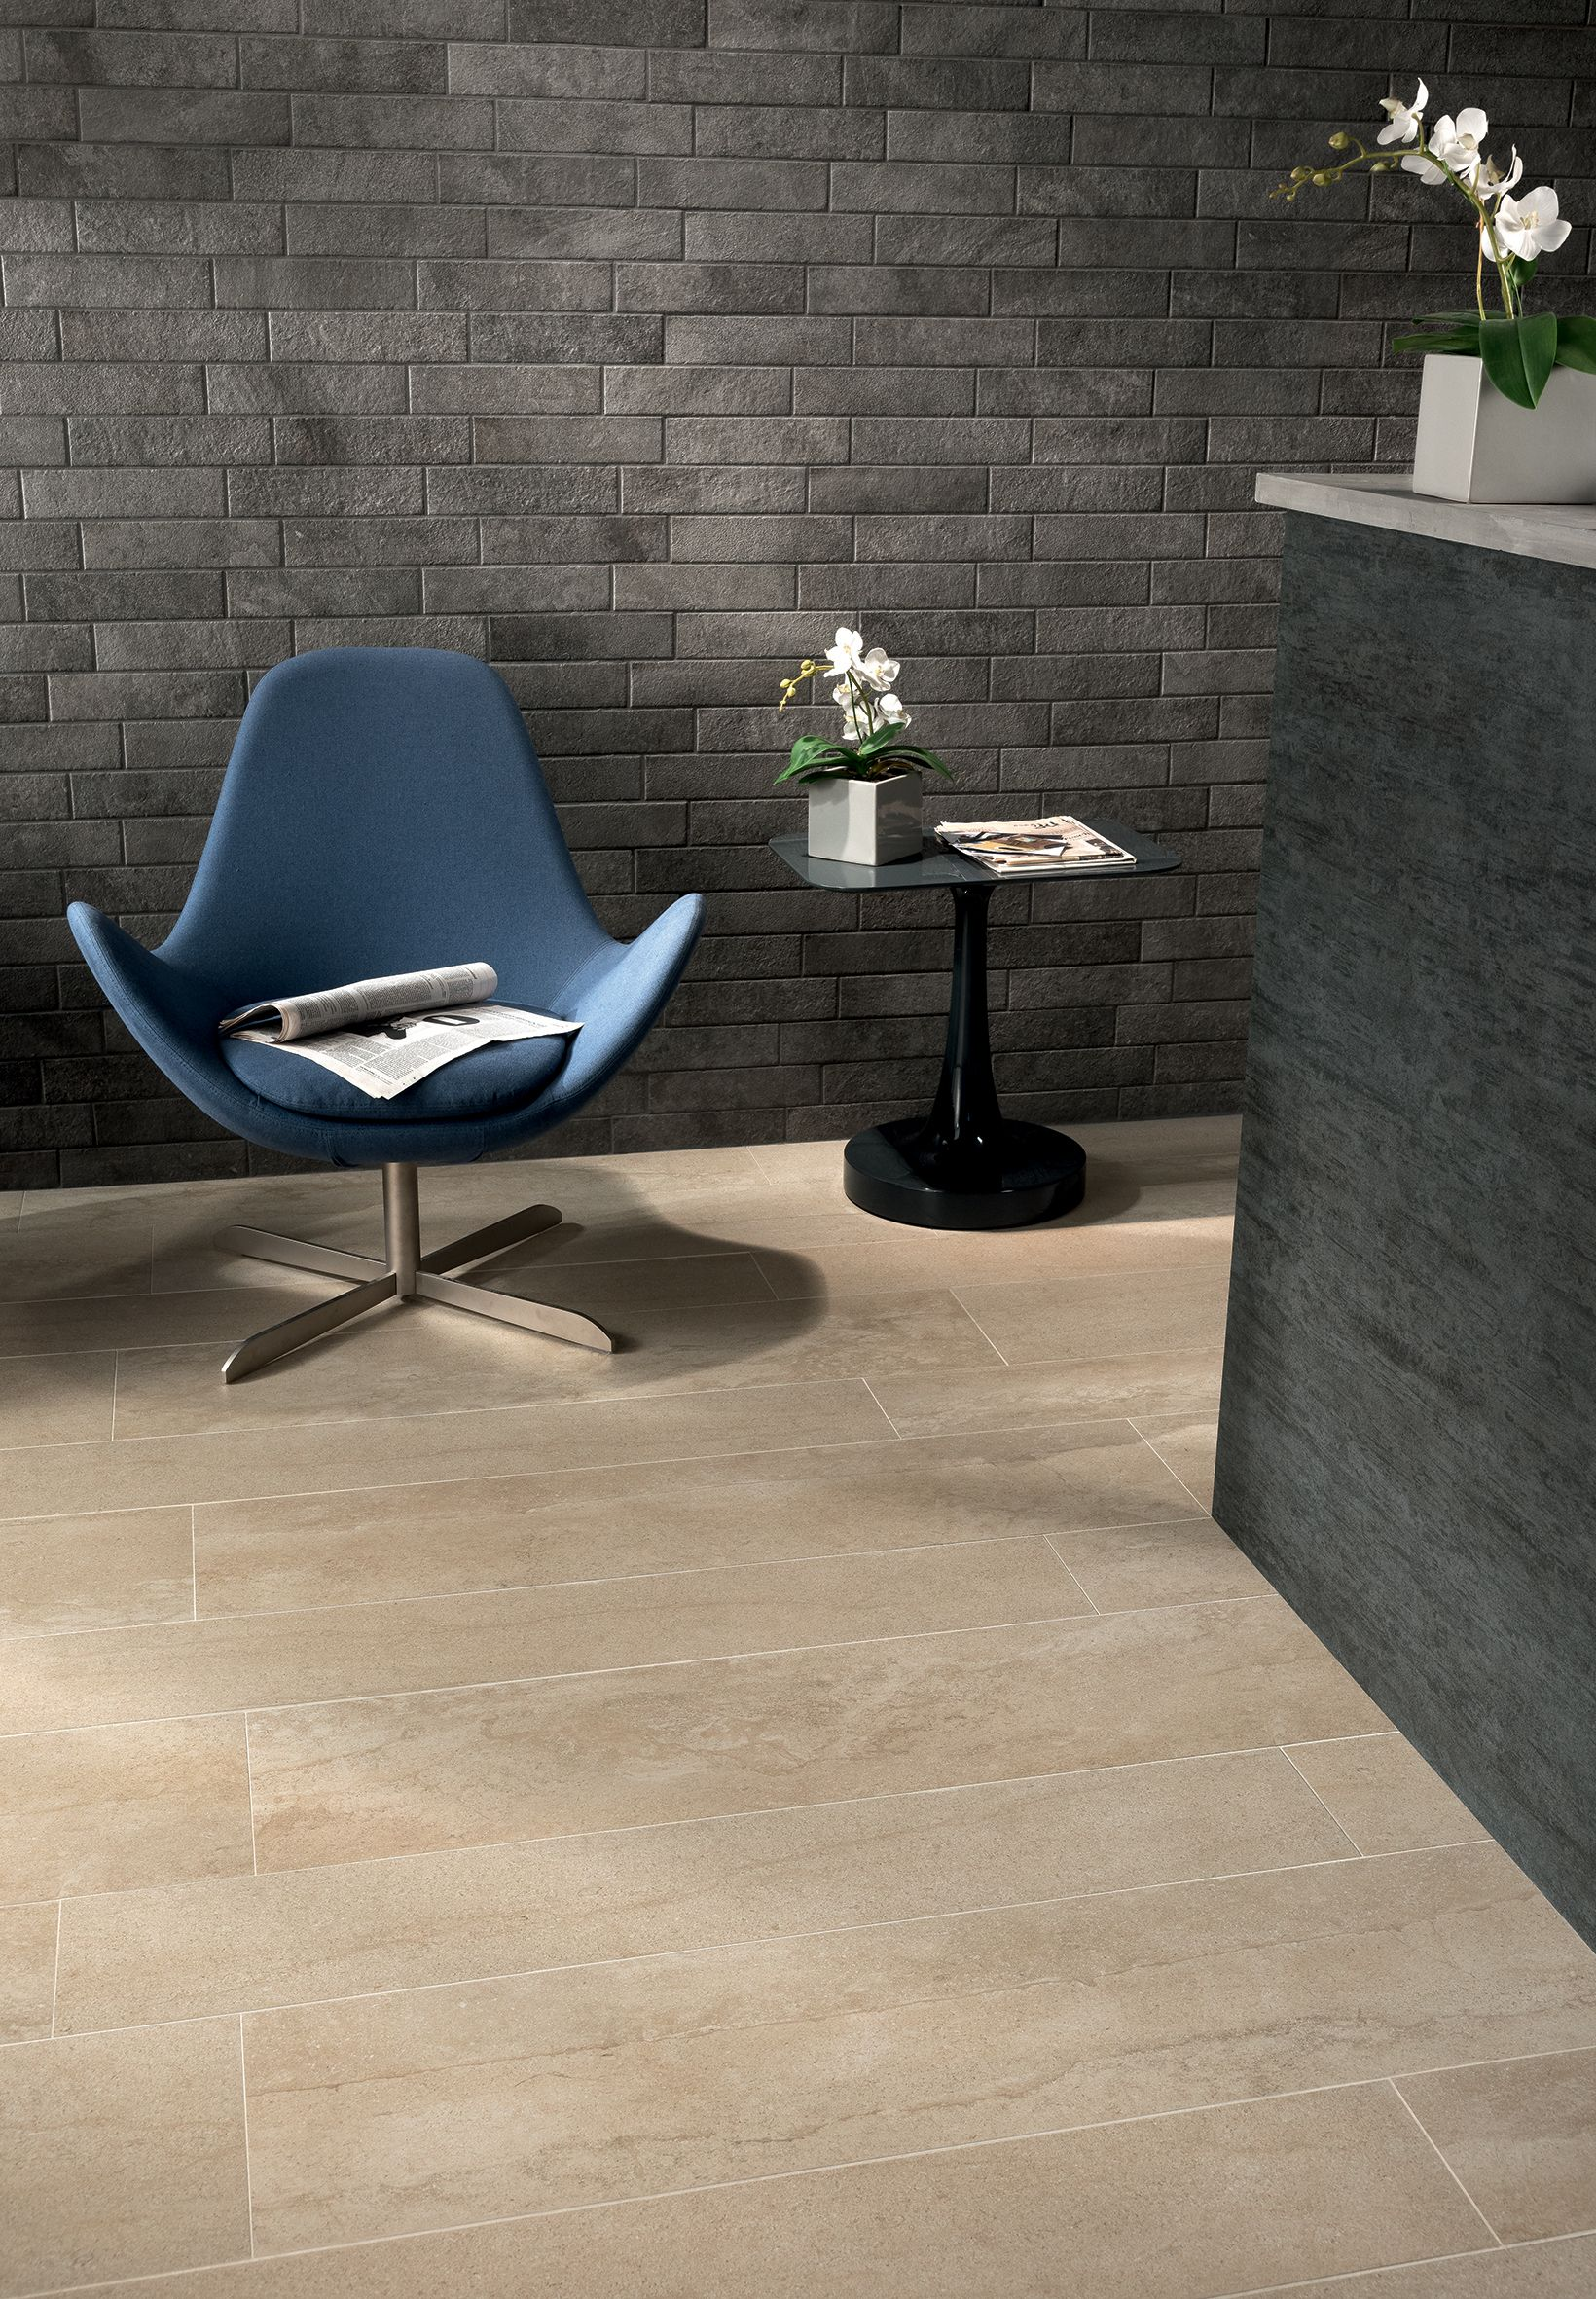 Portraits is a collection that can offer architectural solutions for floors and walls of residential and commercial projects. #stonelook #stone #effect #ceramichecaesar #caesarceramics #tiles #tozeur #tunisia #inspiration #landscapes #reception #studio #d